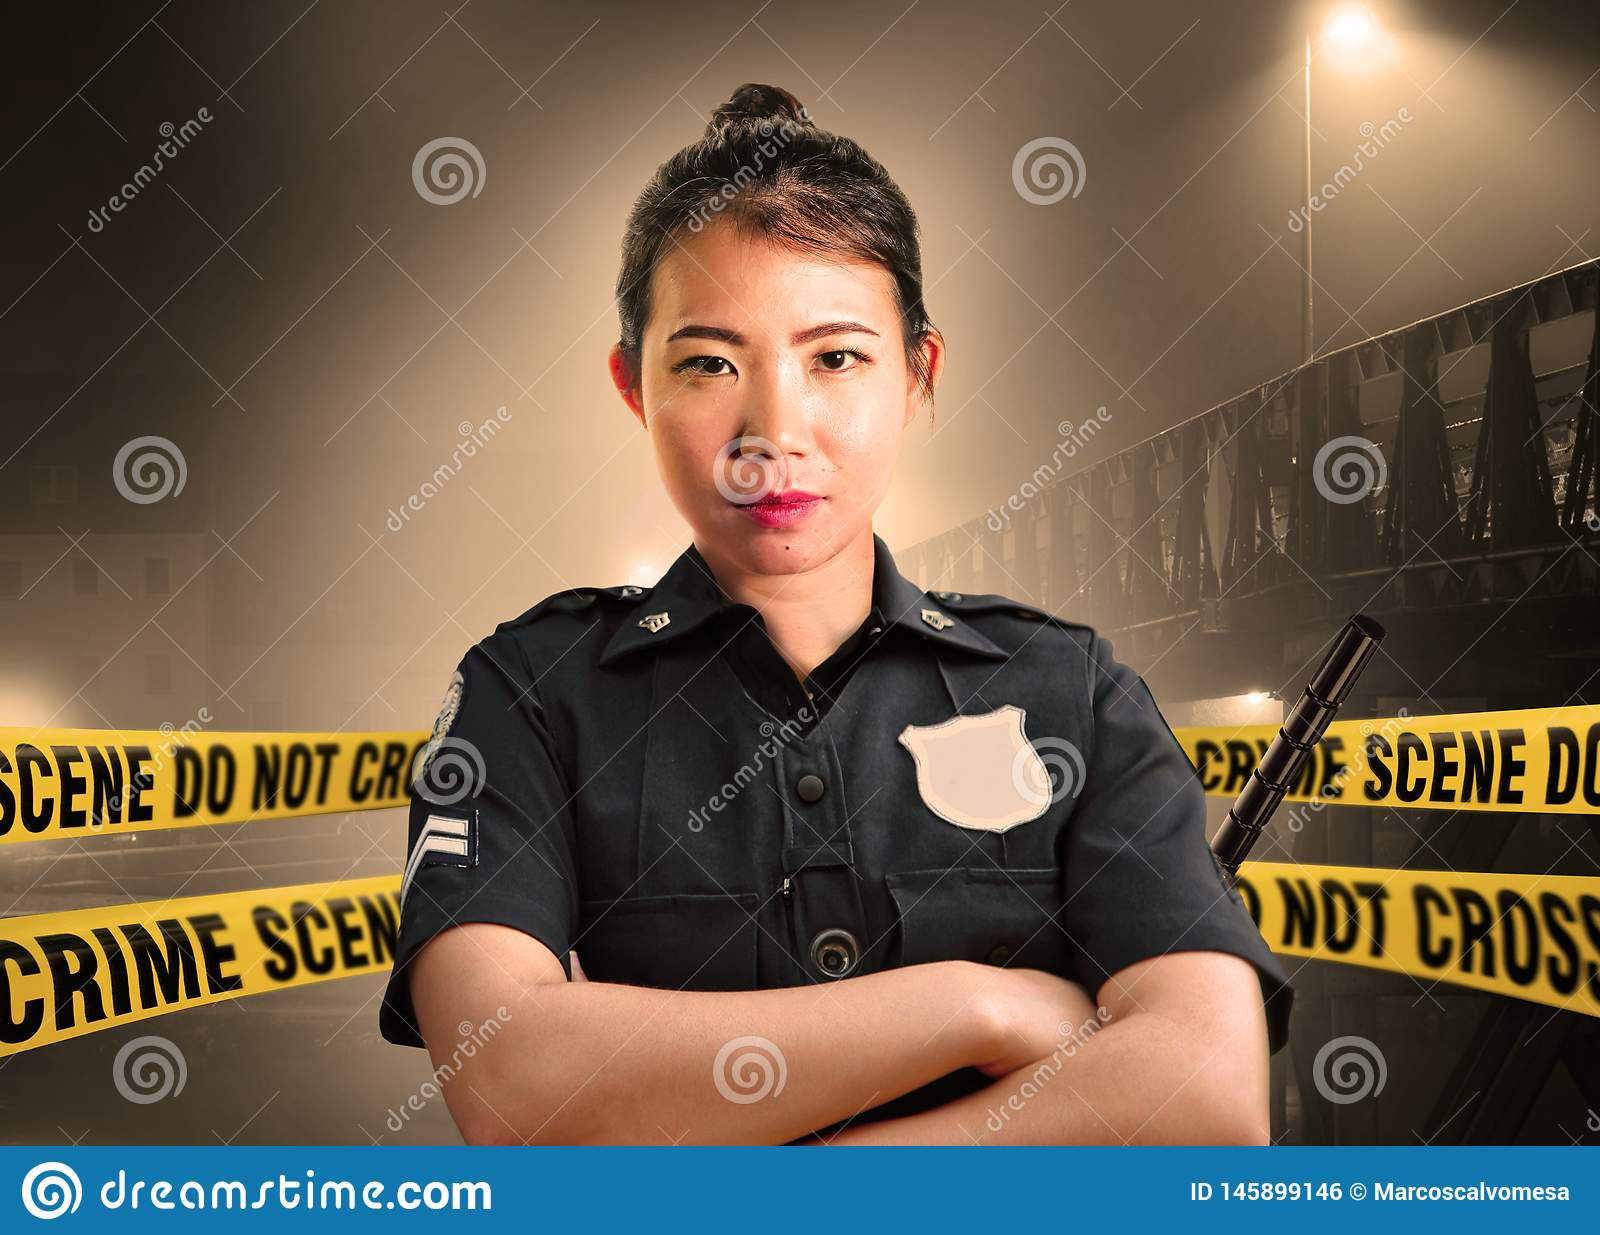 Young Asian American police officer standing serious in custody of crime scene for preserving evidence at do not cross police line